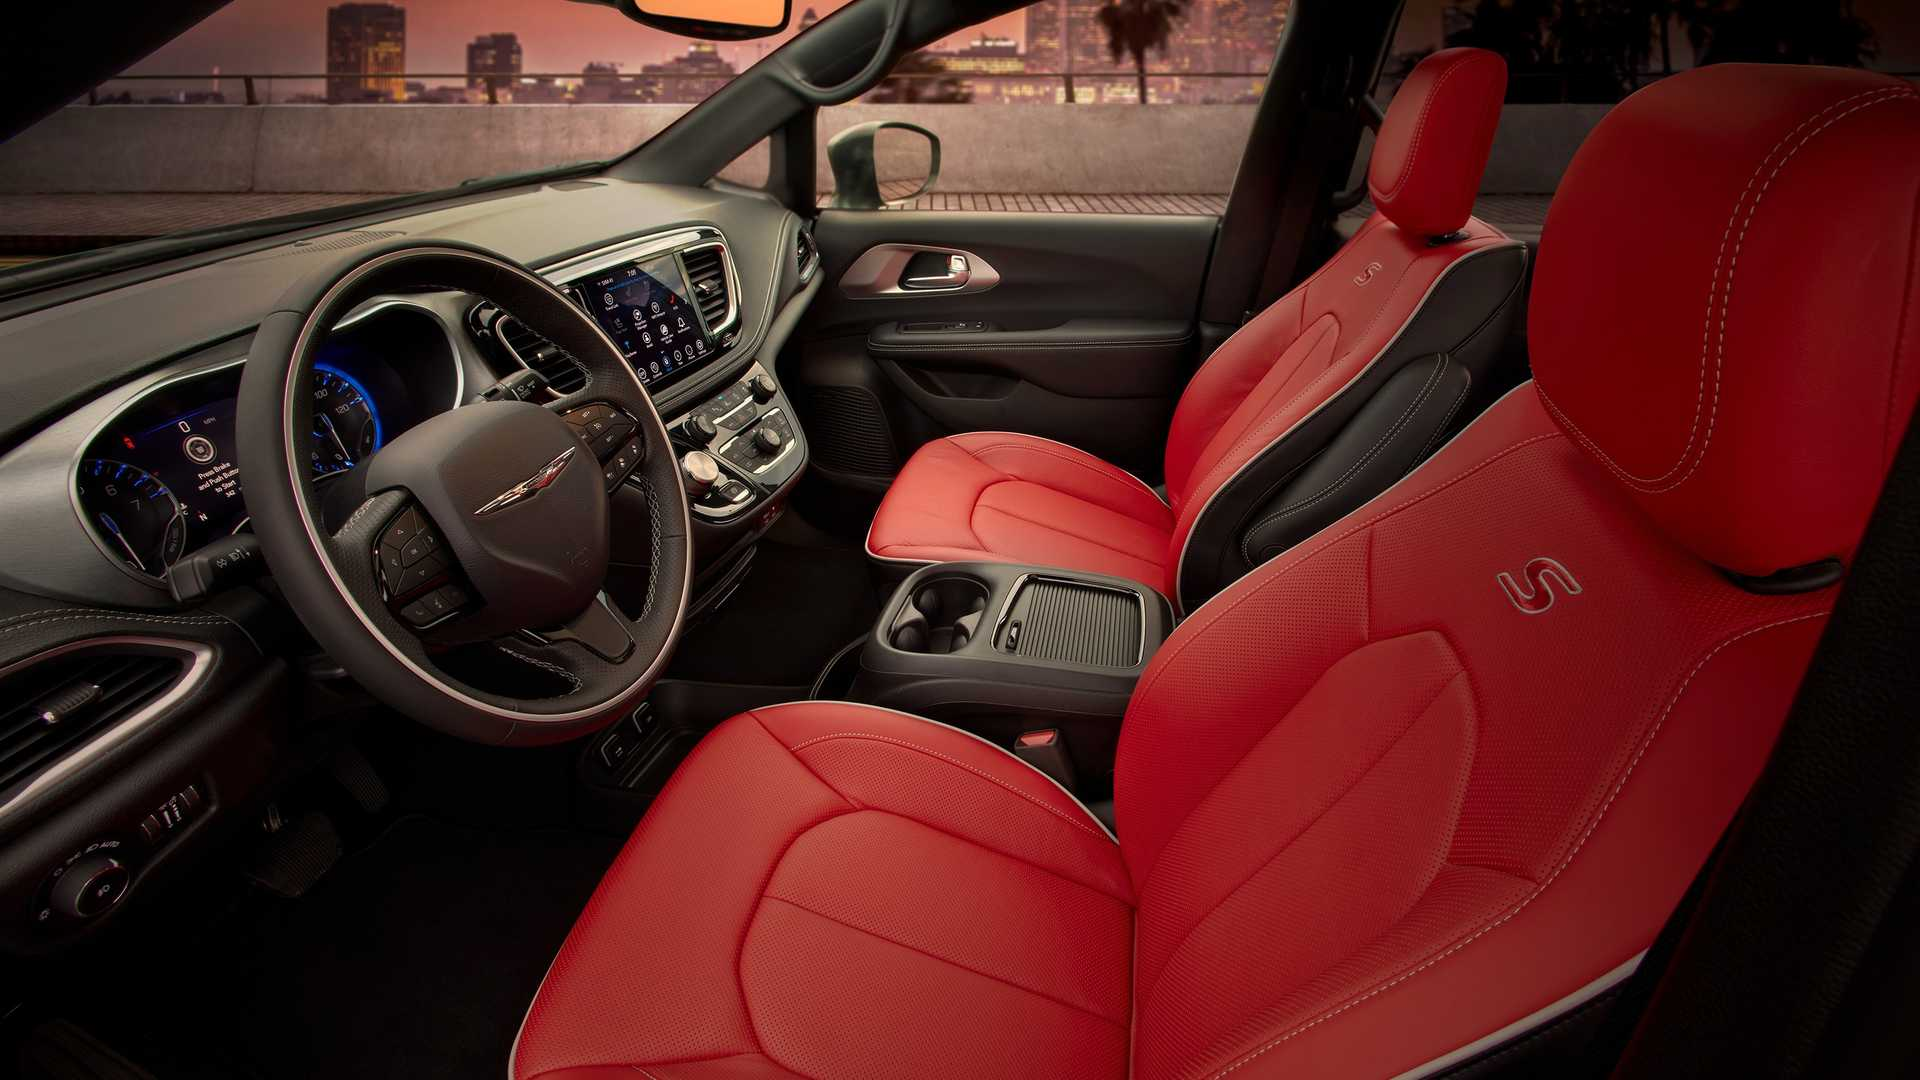 2020_Chrysler_Pacifica_Red_S_Edition_0024